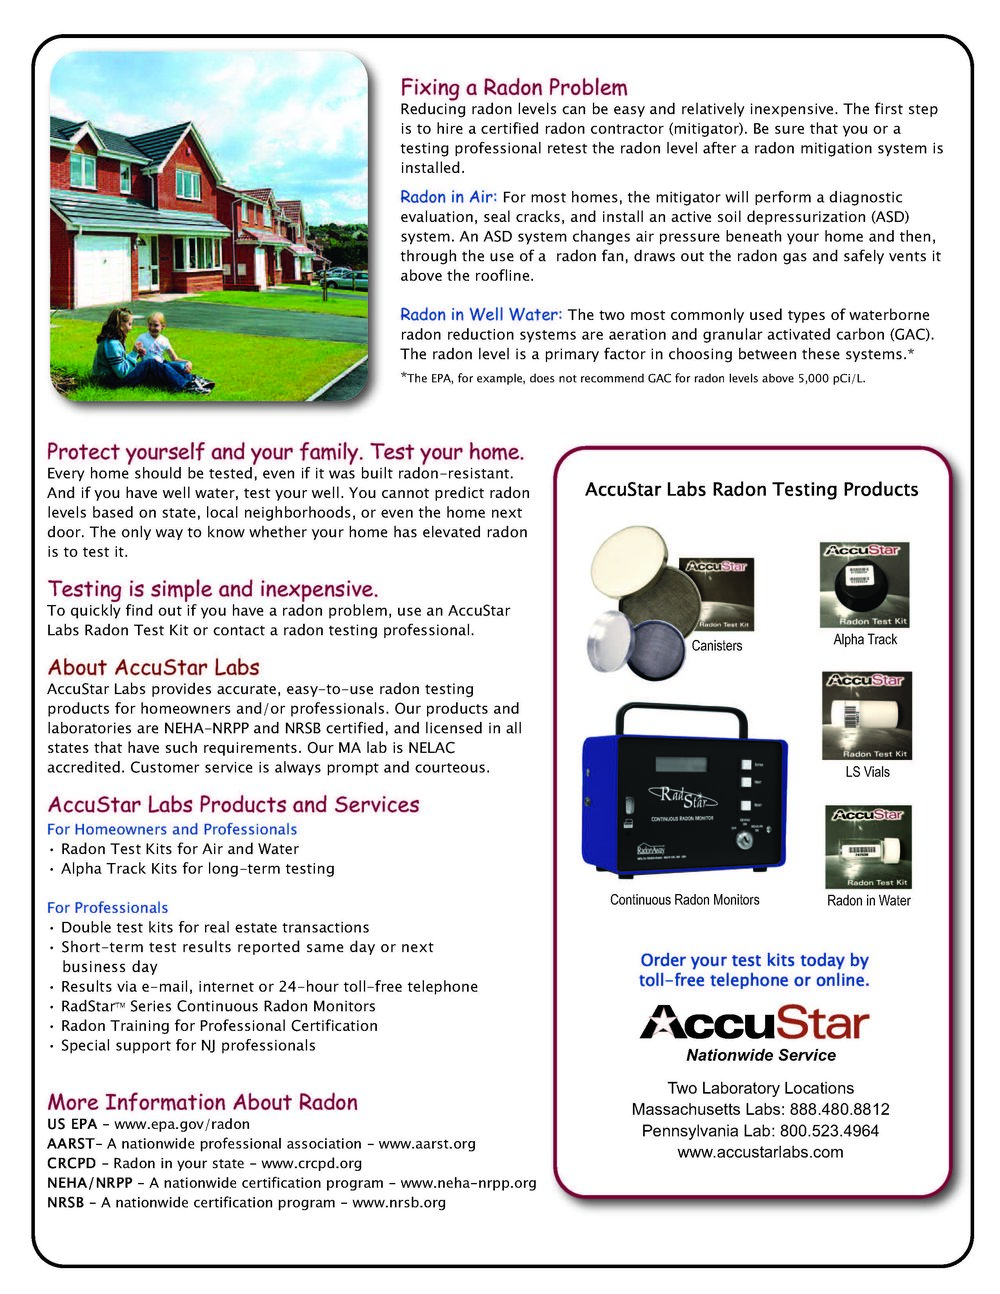 Radon_and_You_Information_Flyer_Page_2.jpg